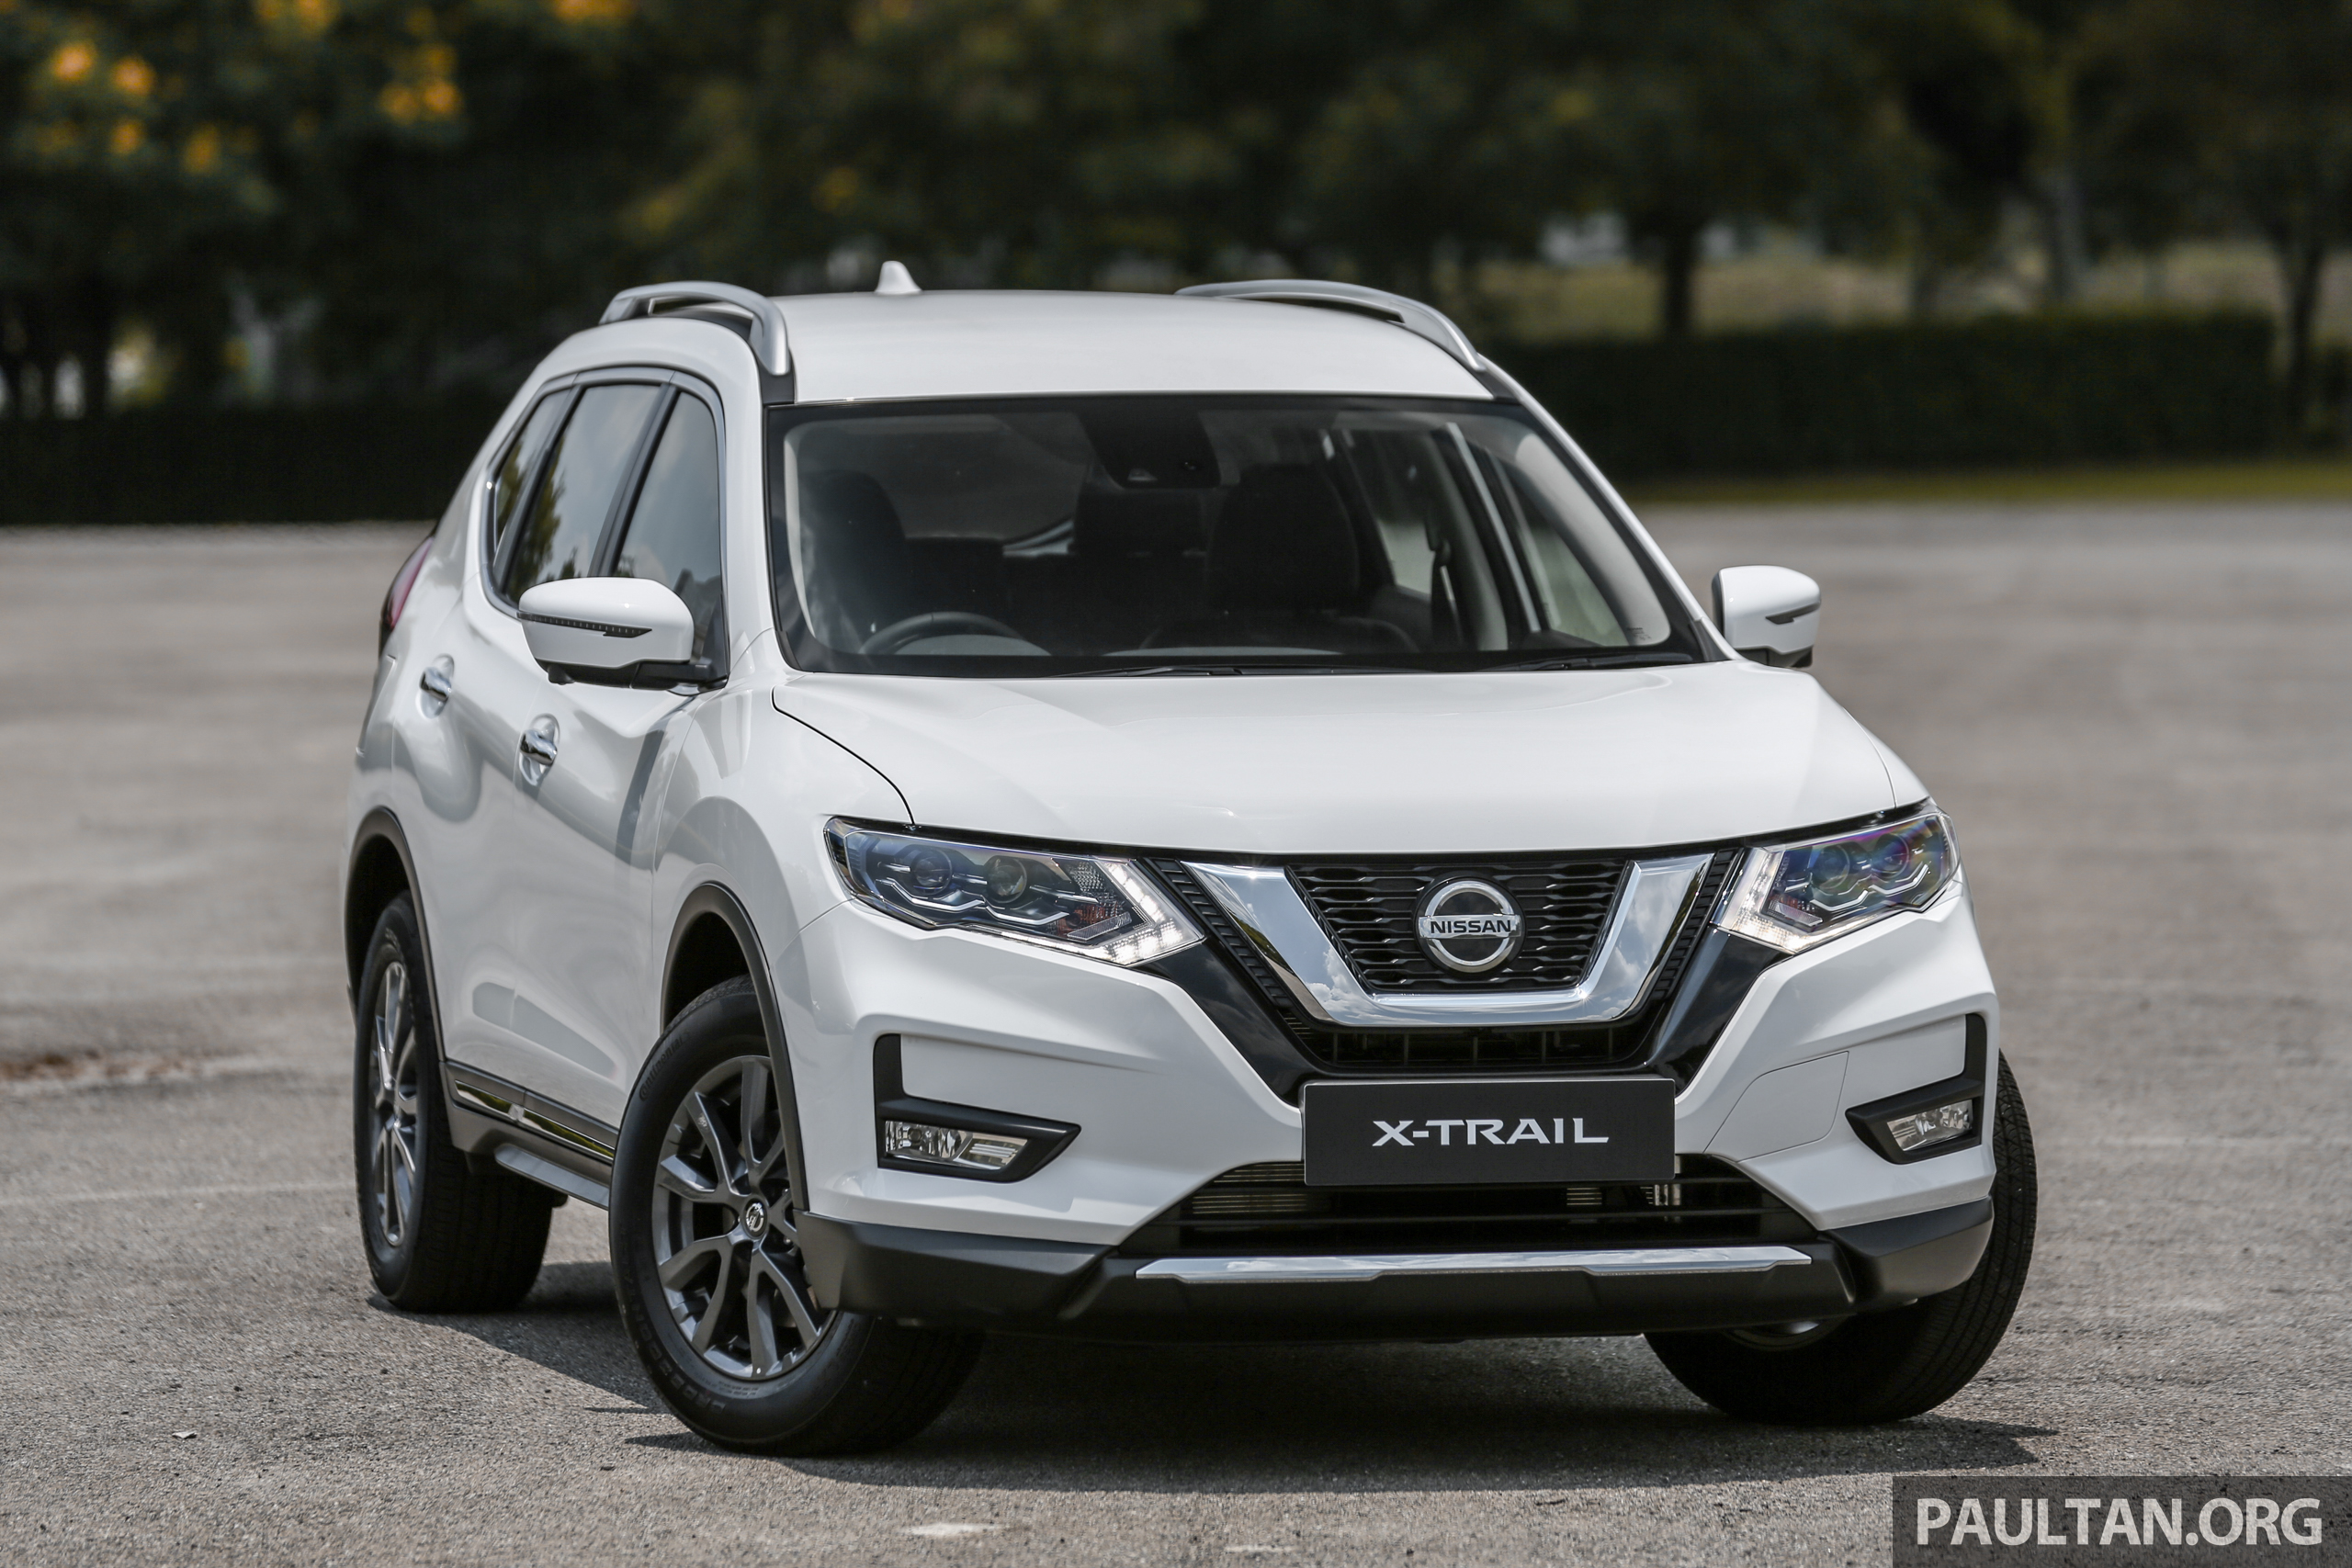 driven: 2019 nissan x-trail facelift - hybrid and 2.5l